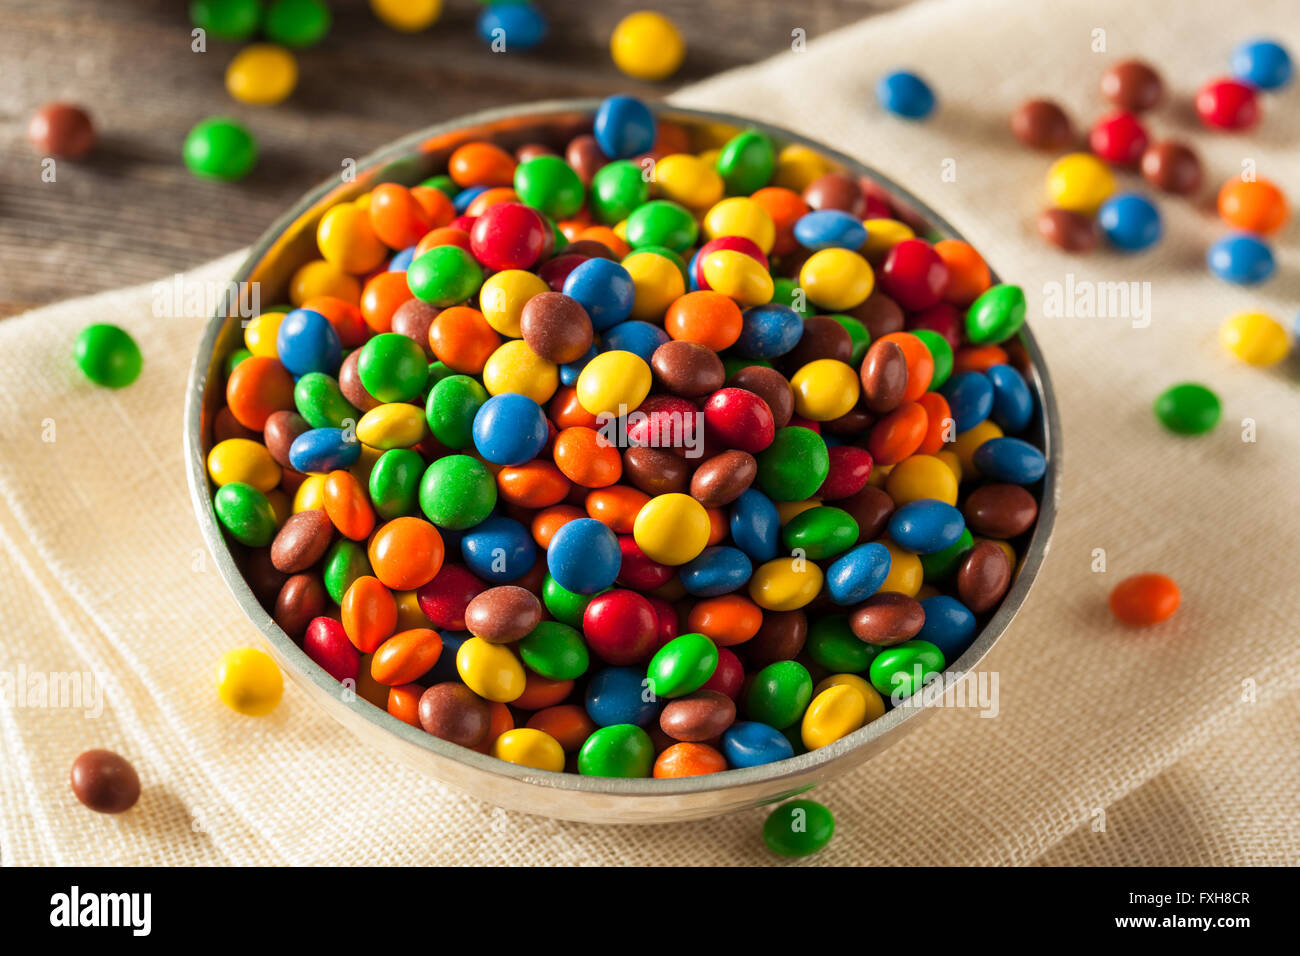 Rainbow Colorful Candy Coated Chocolate Pieces in a Bowl - Stock Image